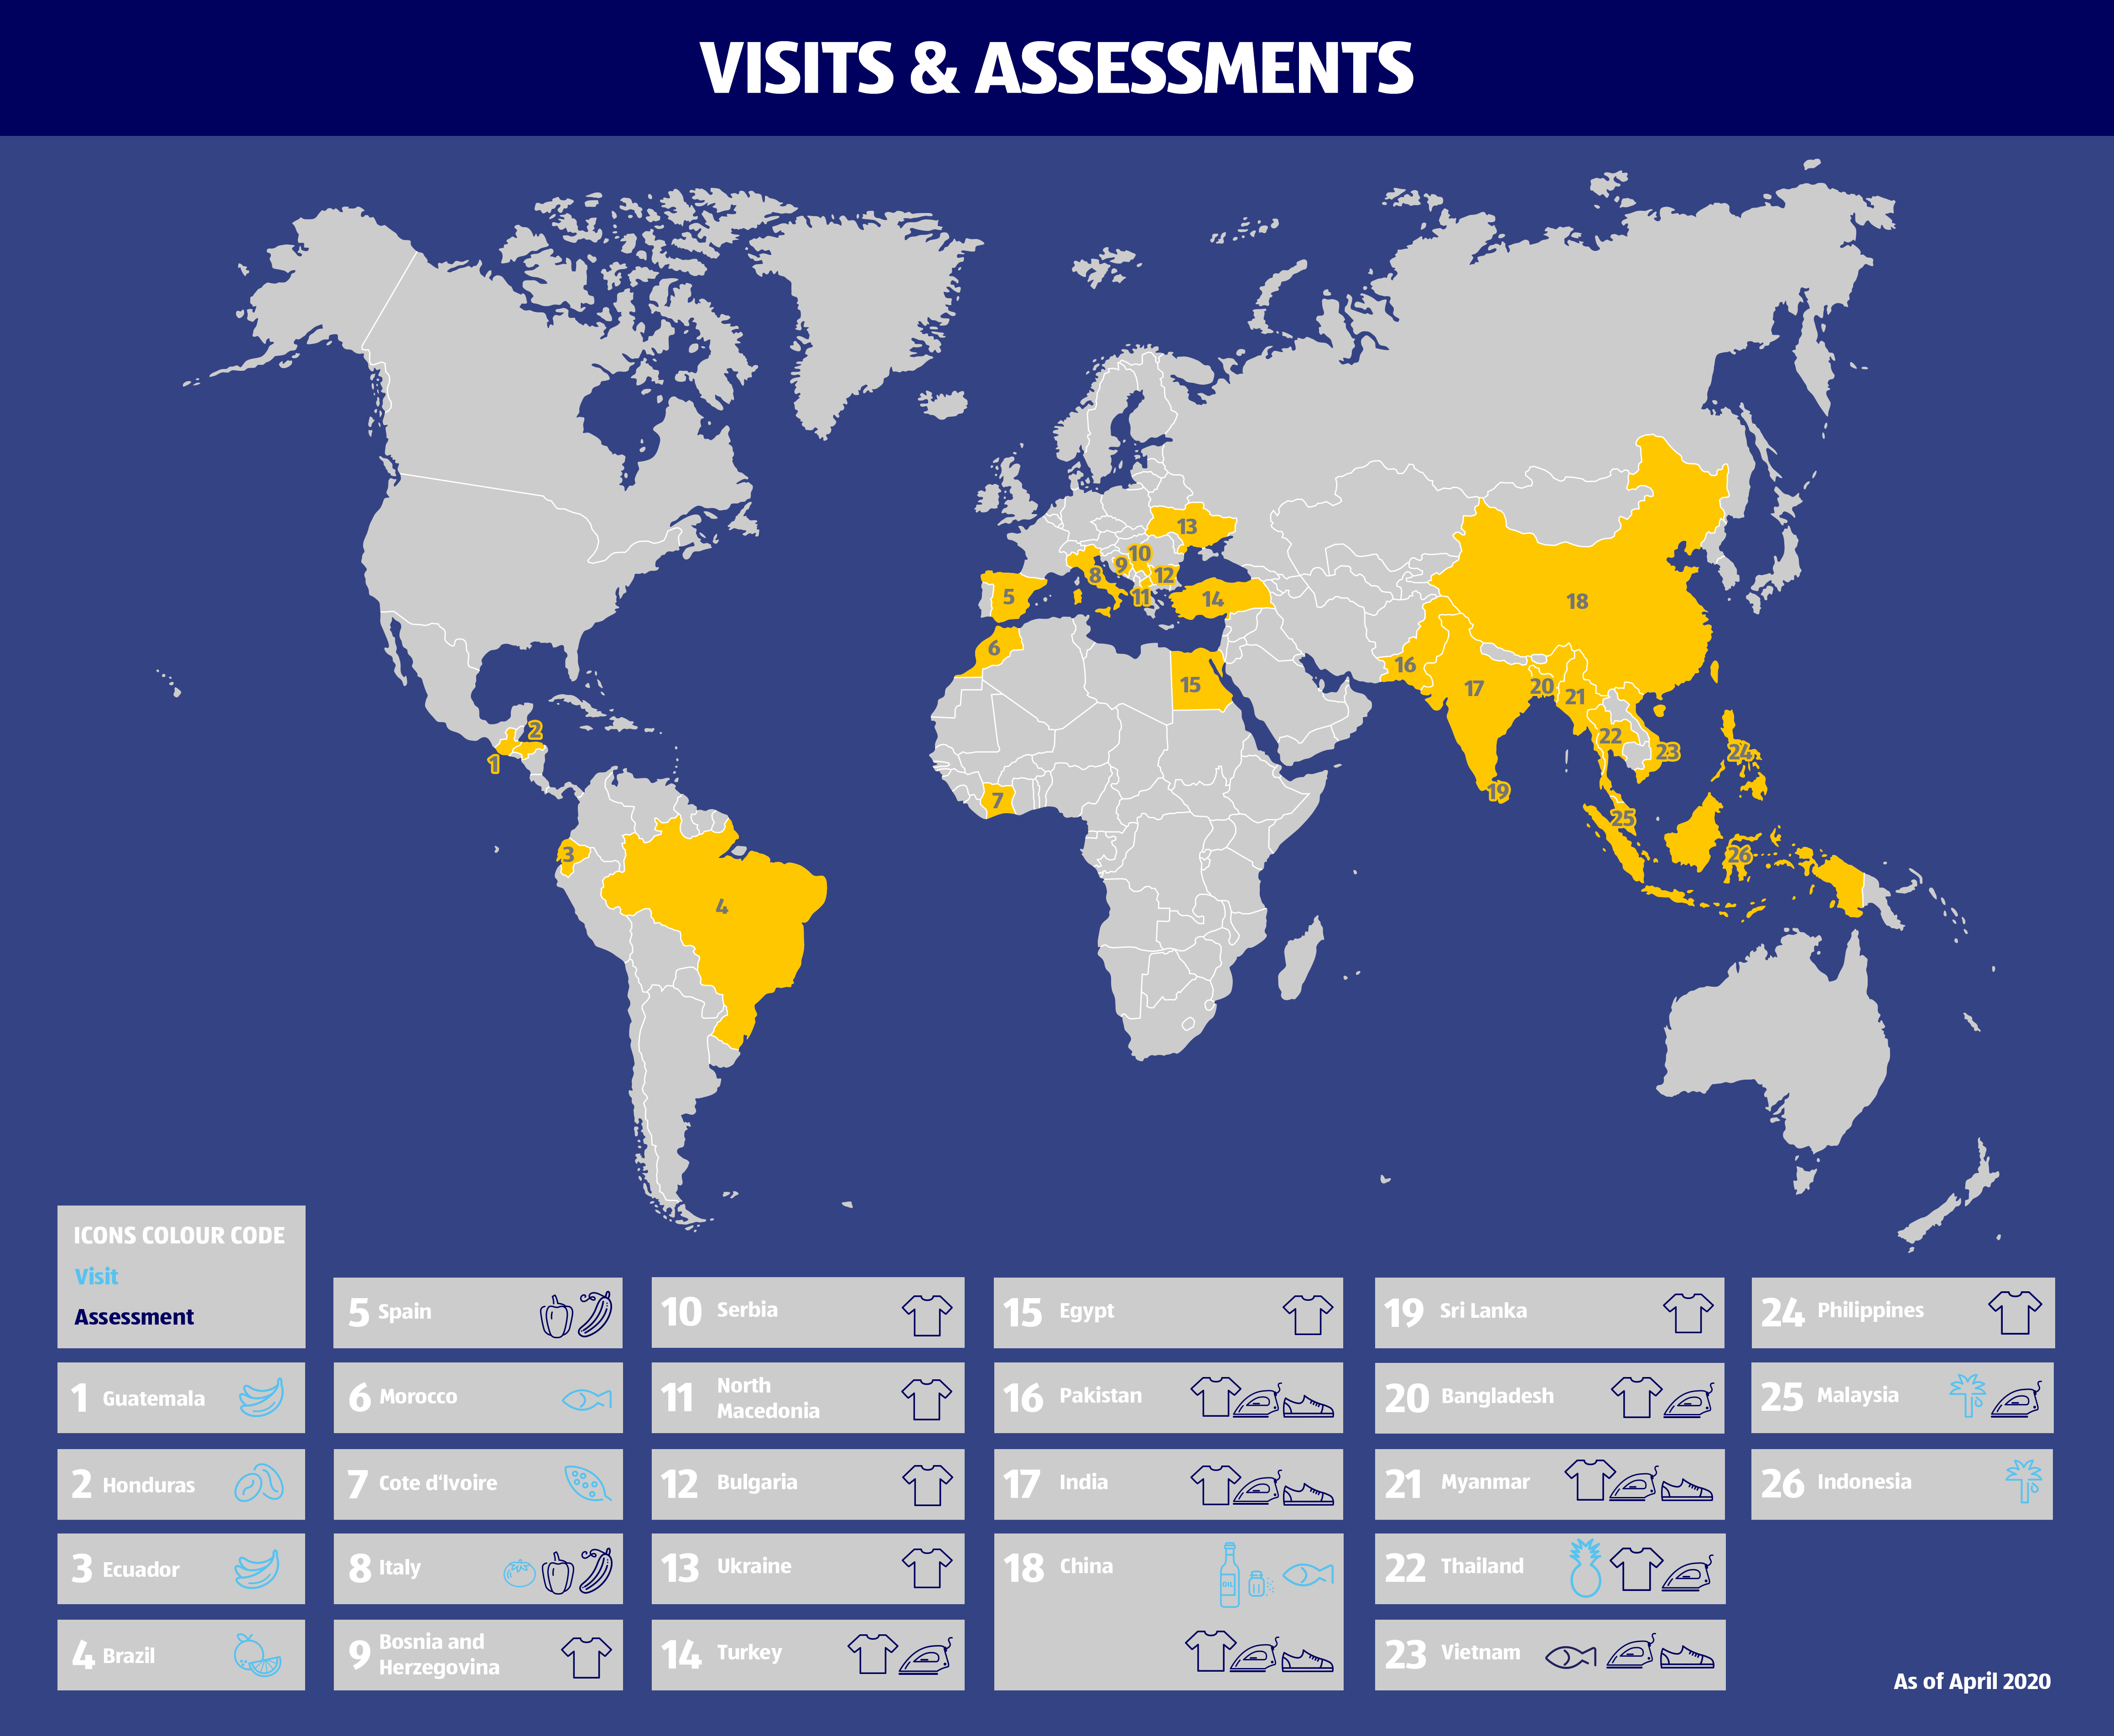 World map visits and assessments